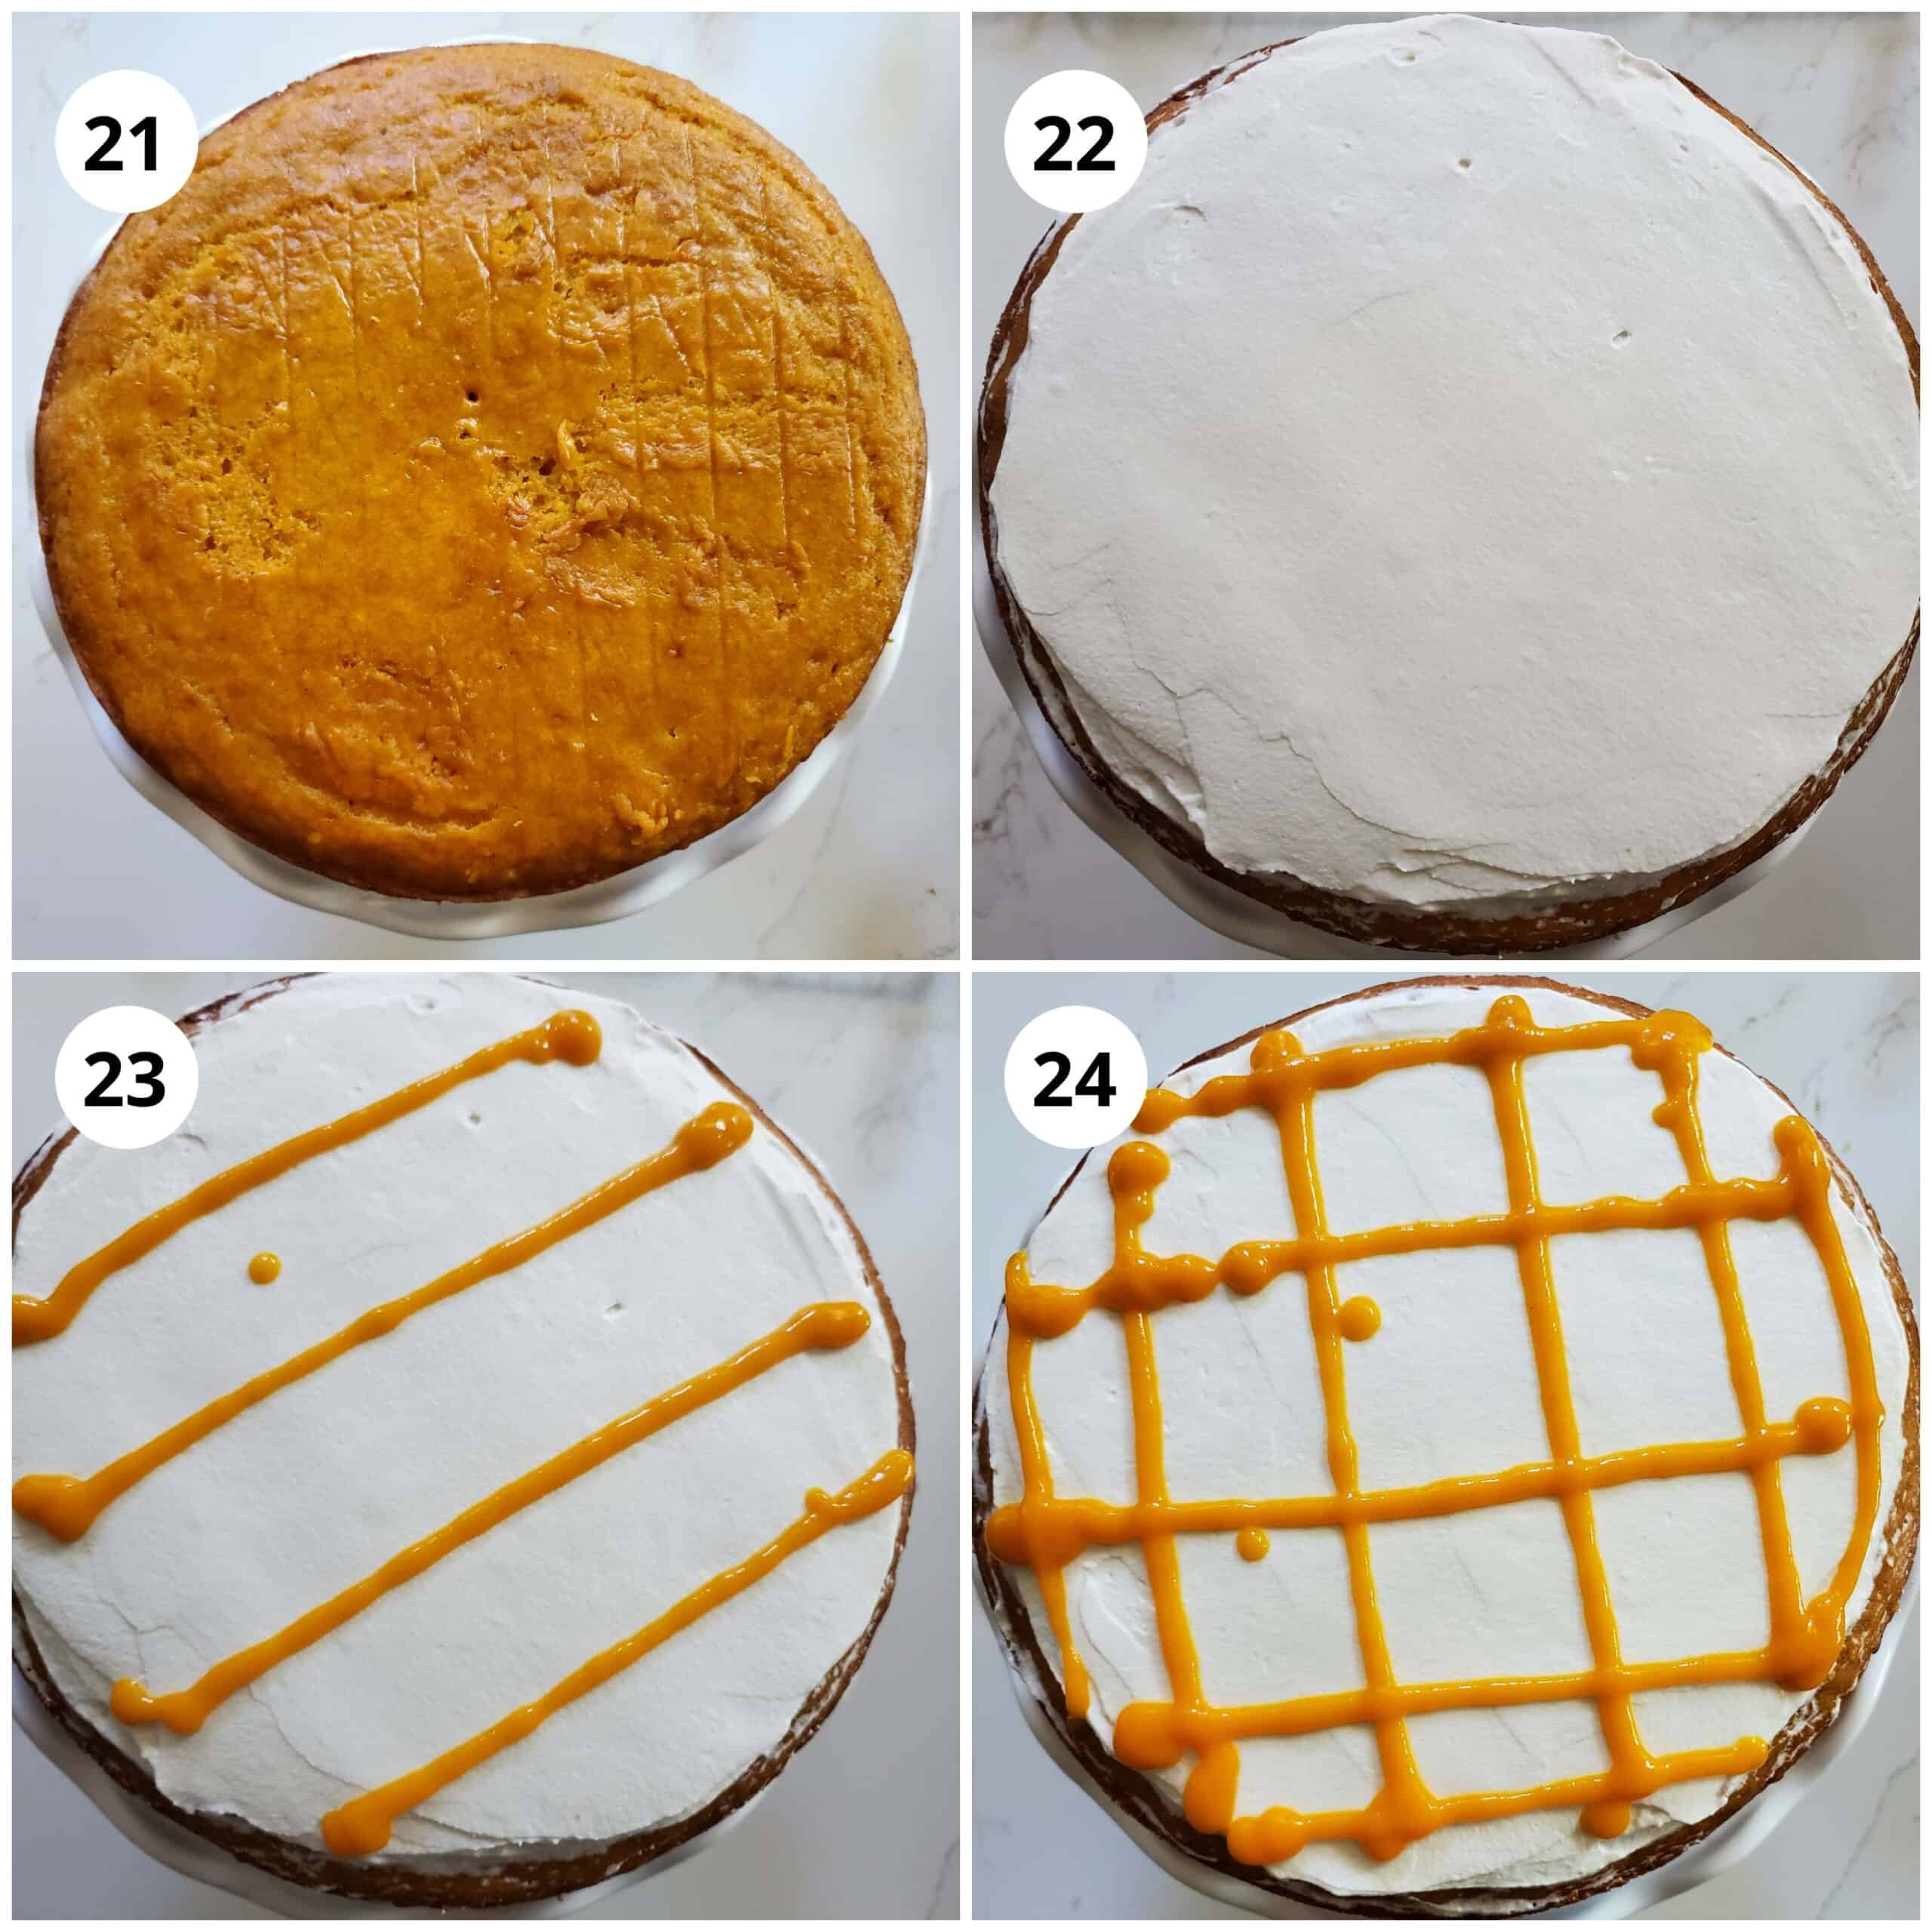 Step 2 for cake assembly is to add the top layer and add frosting and mango puree to decorate